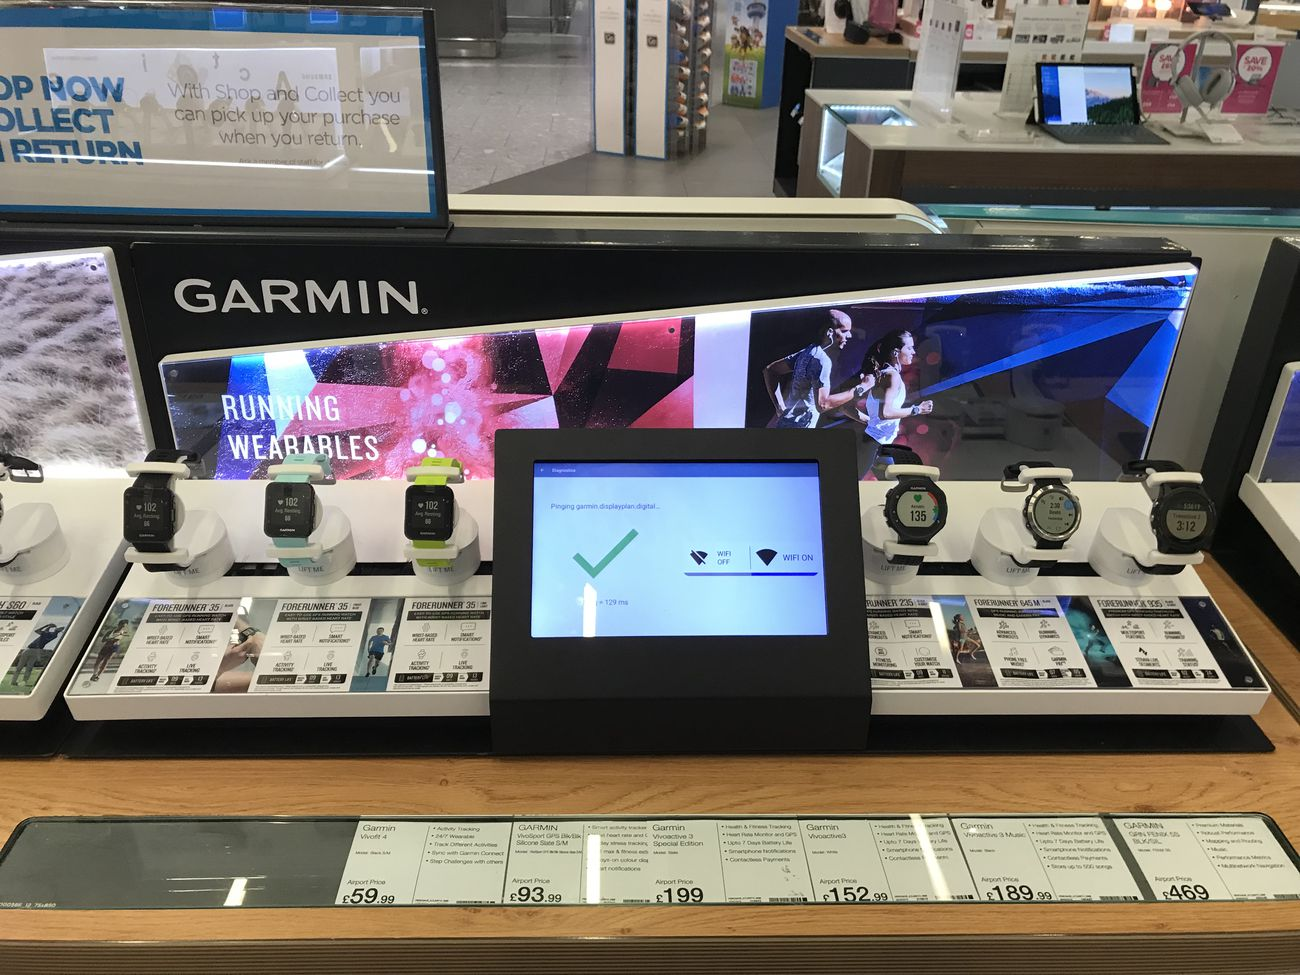 garmin-travel-retail-03